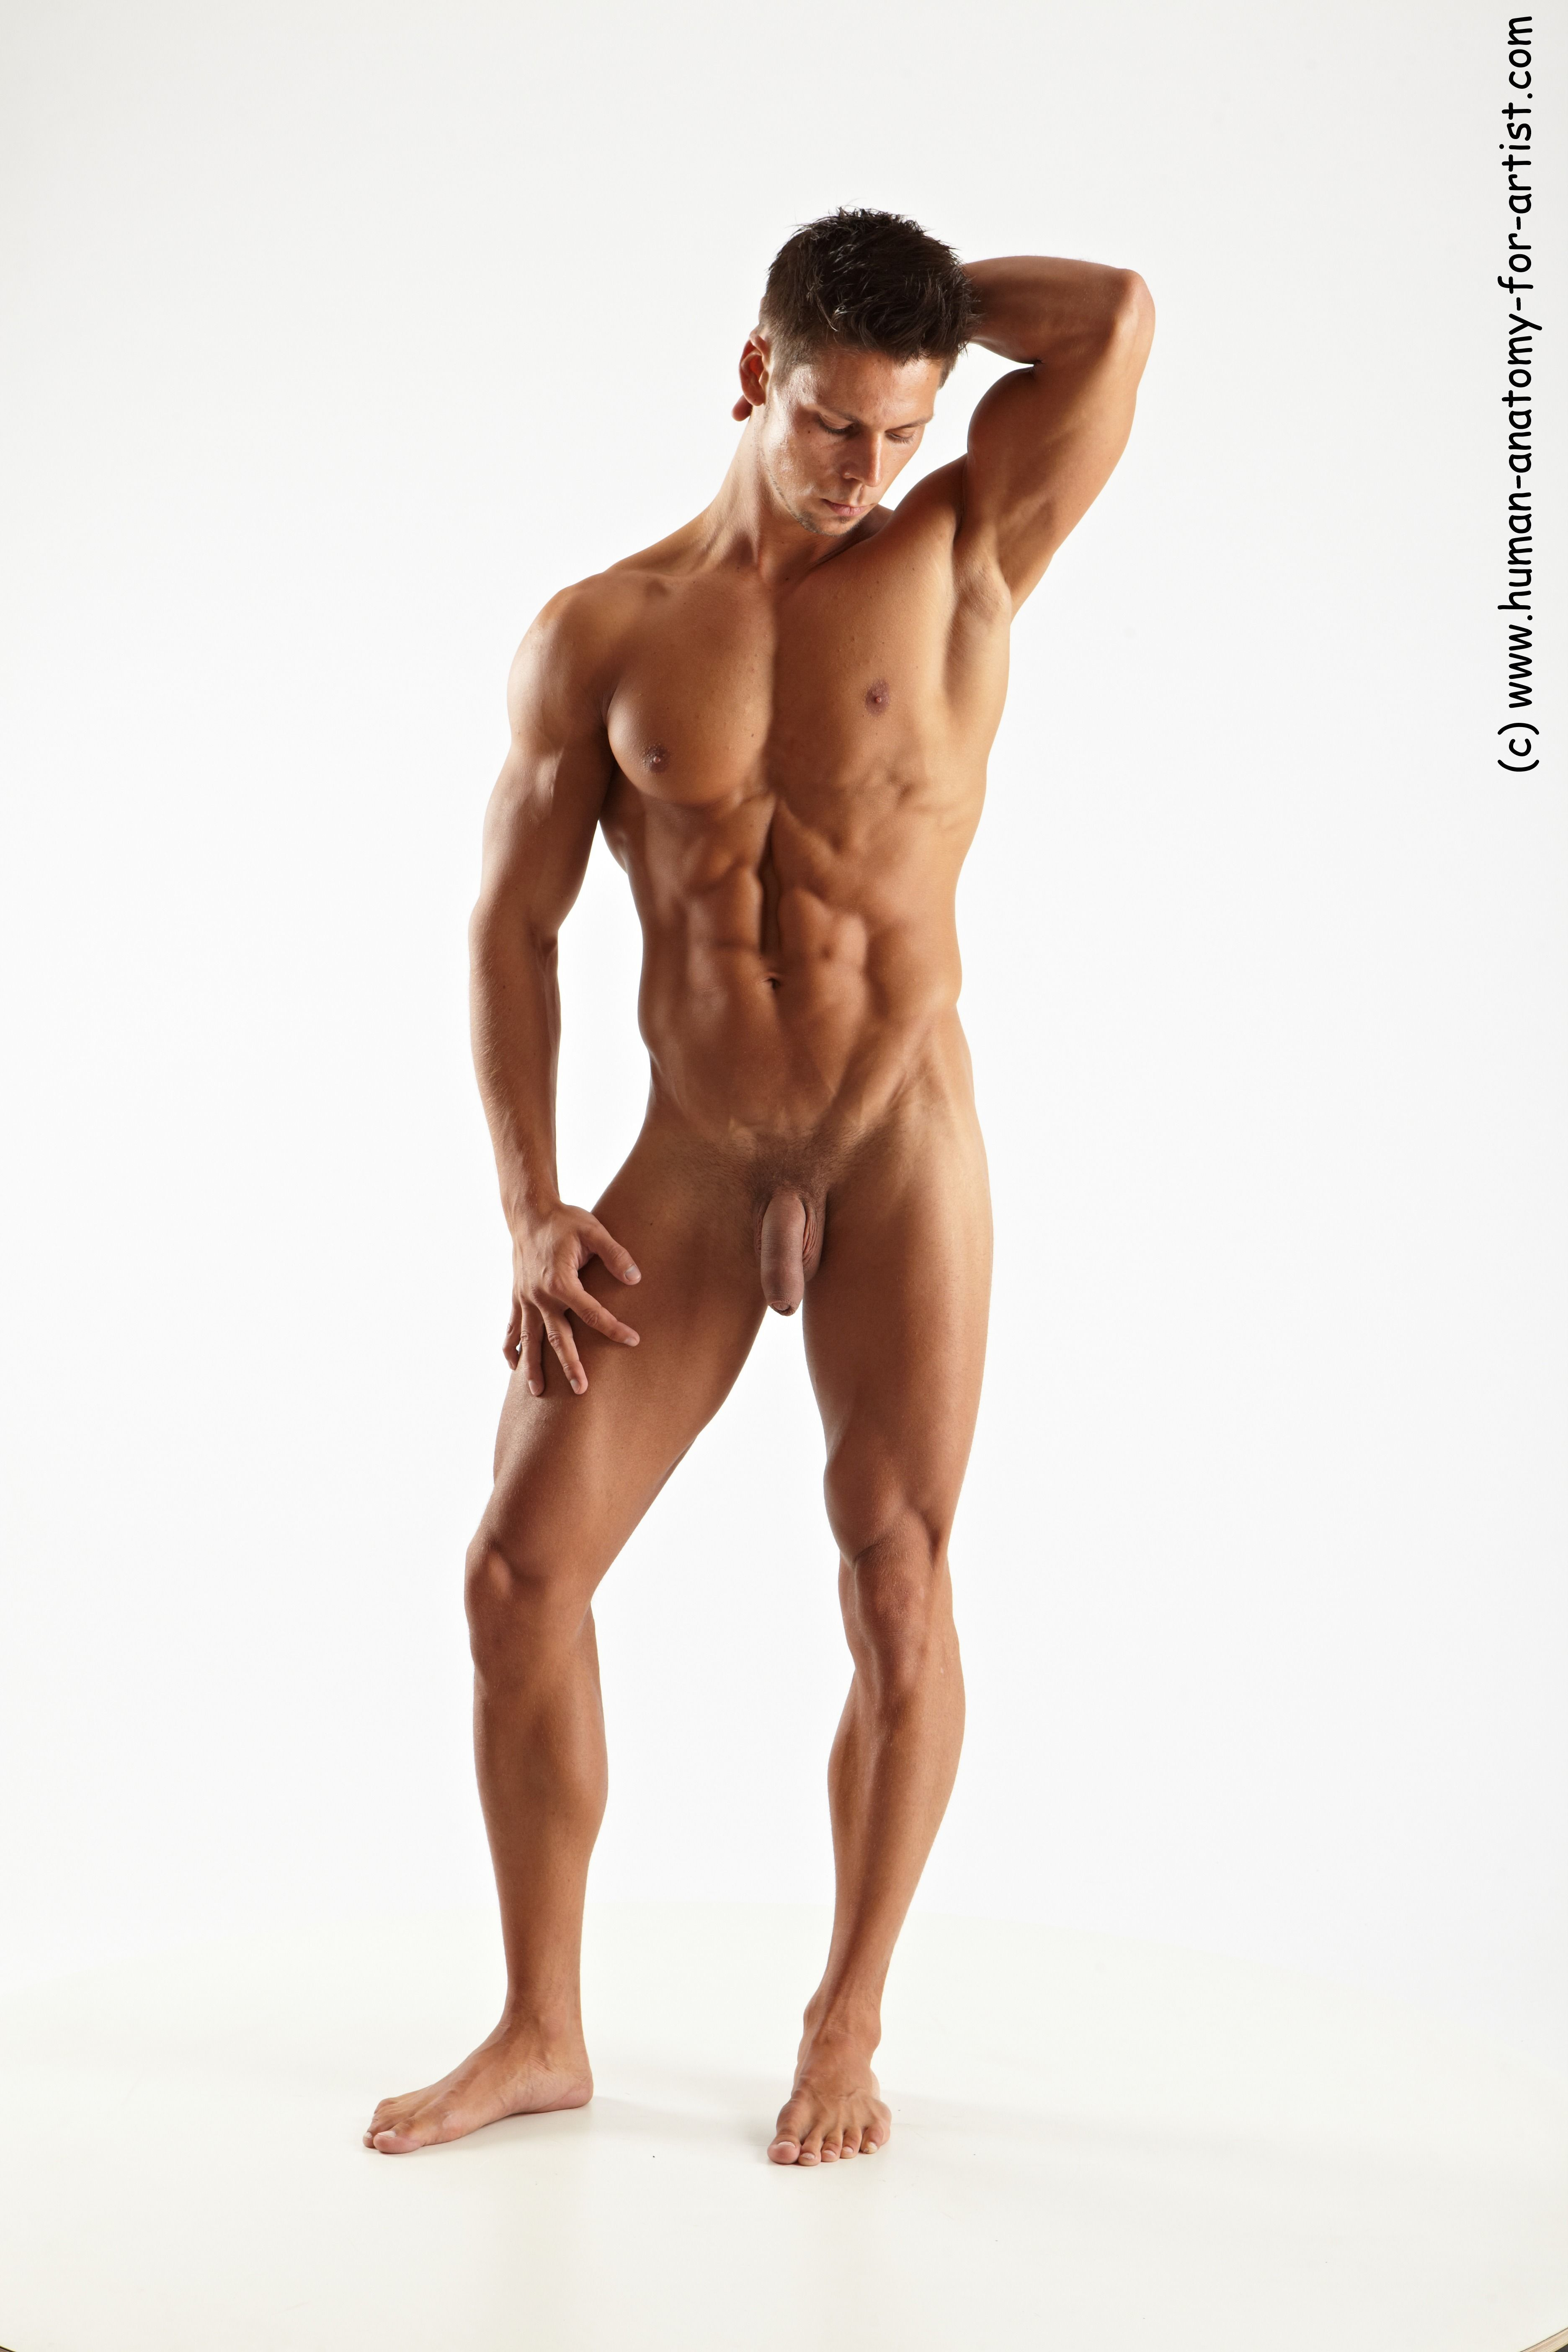 Photo Of Nude Man White Standing Poses - All Muscular -2234